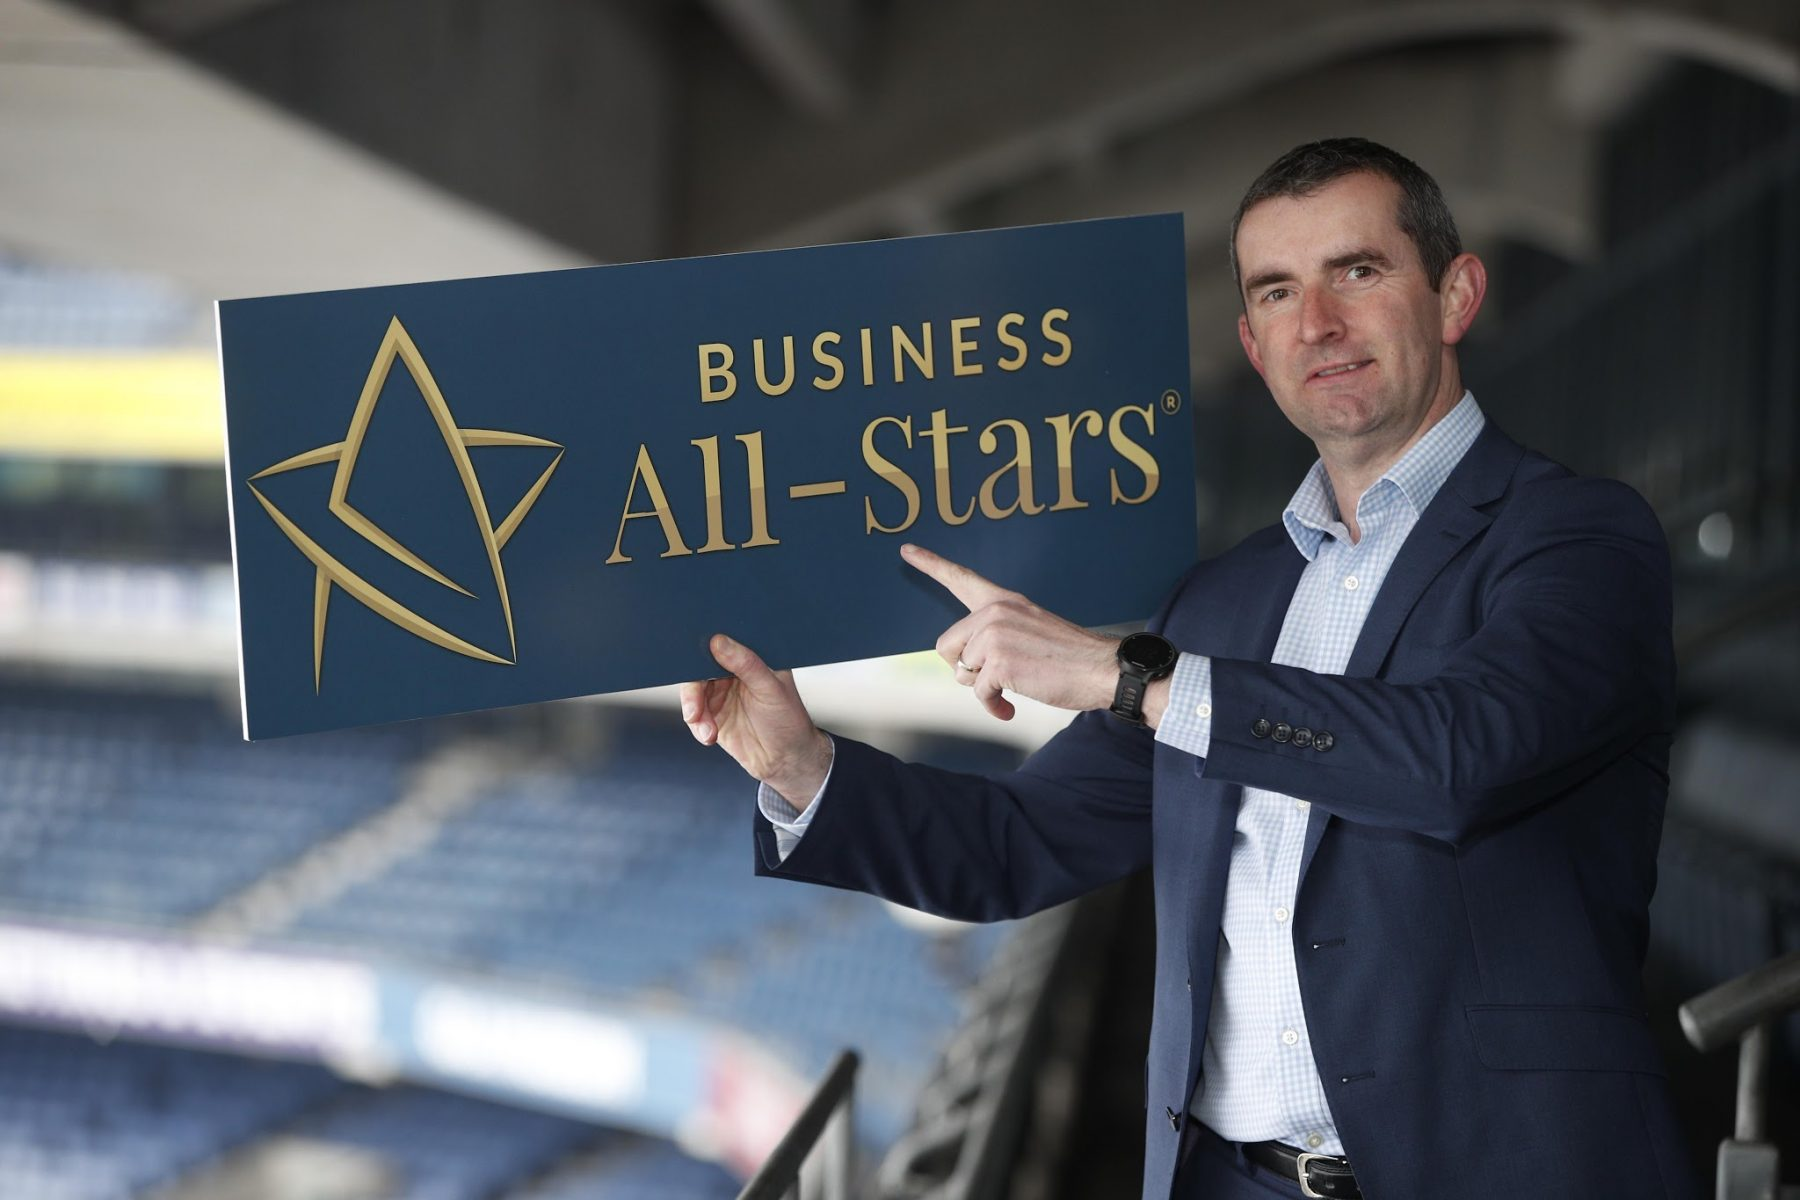 Business AllStars Photo